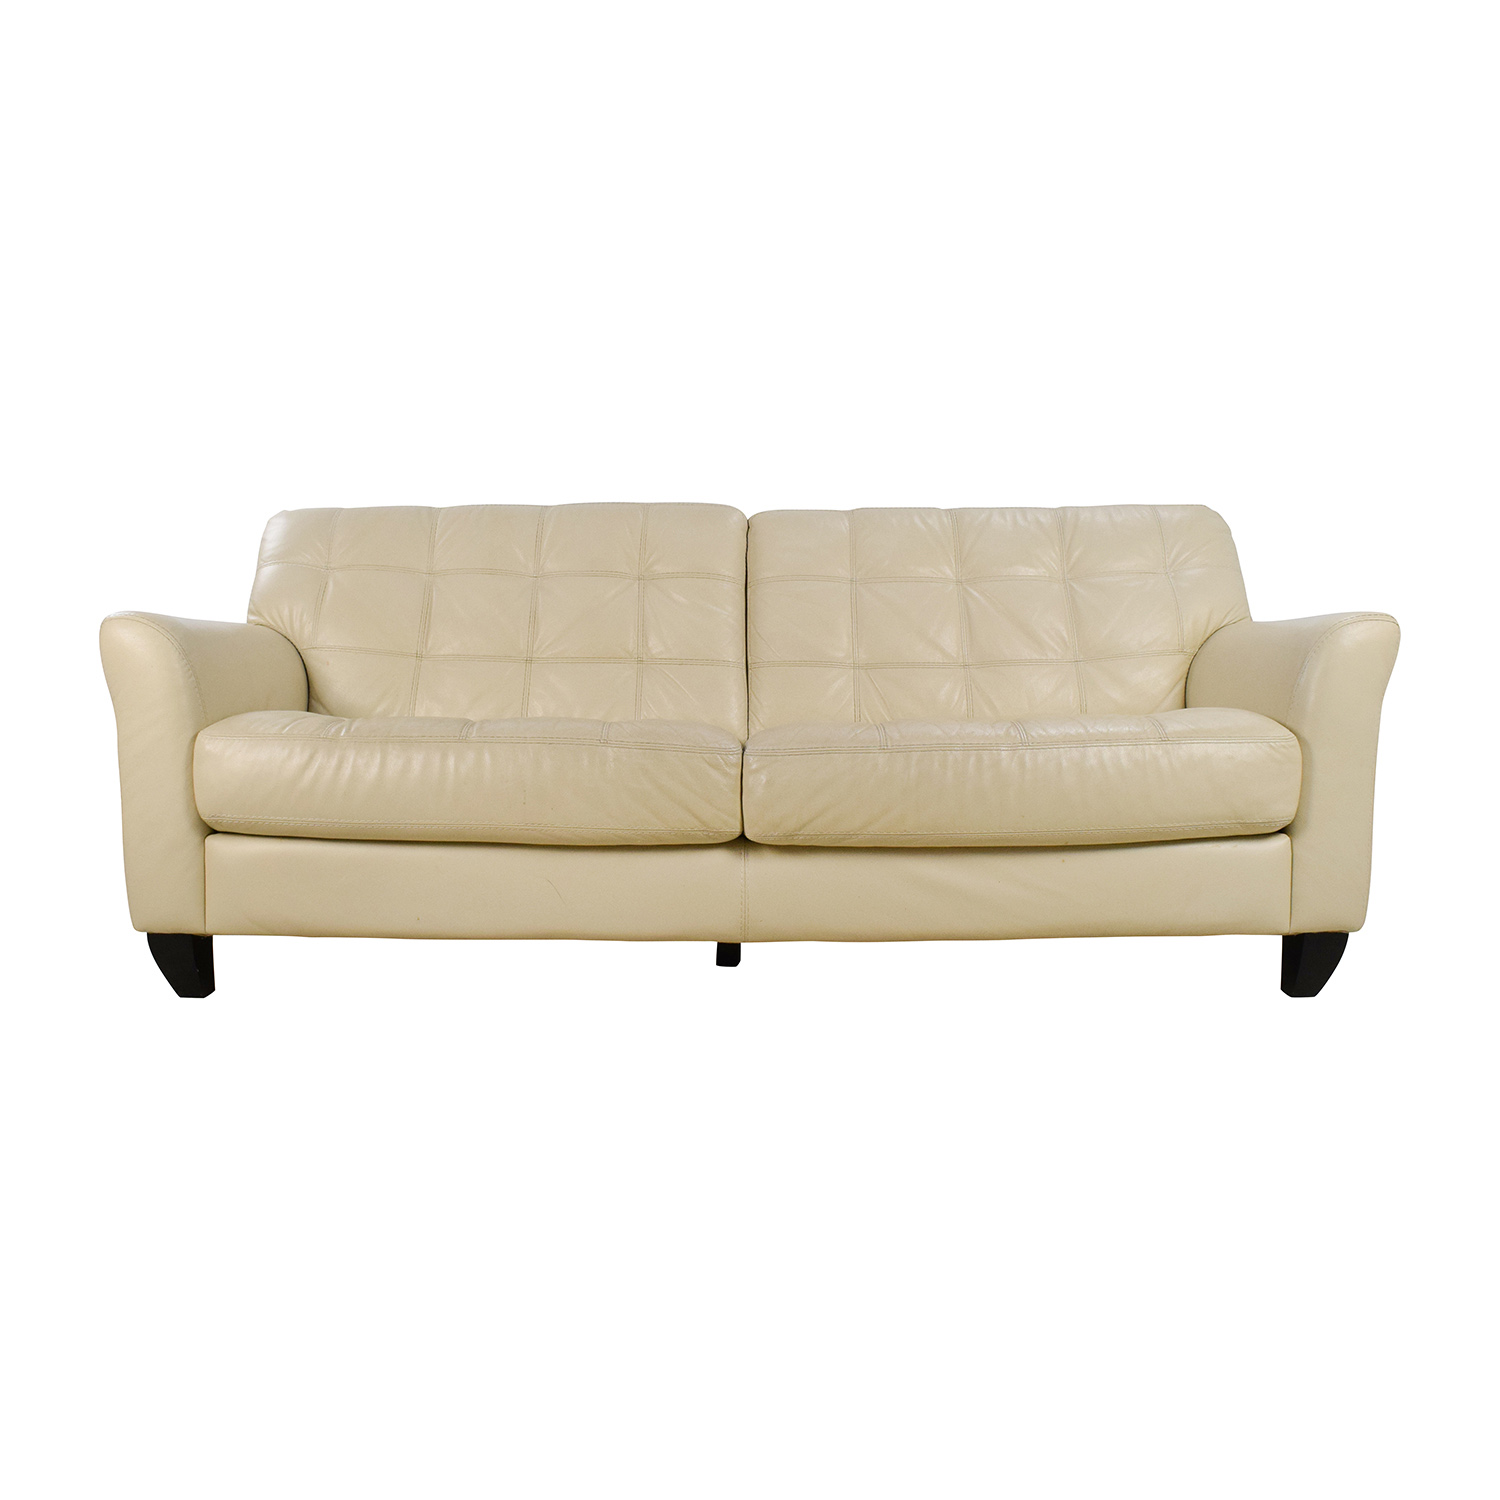 10 Best Collection Of Off White Leather Sofas: Macy's Macy's Milan White Leather Couch / Sofas